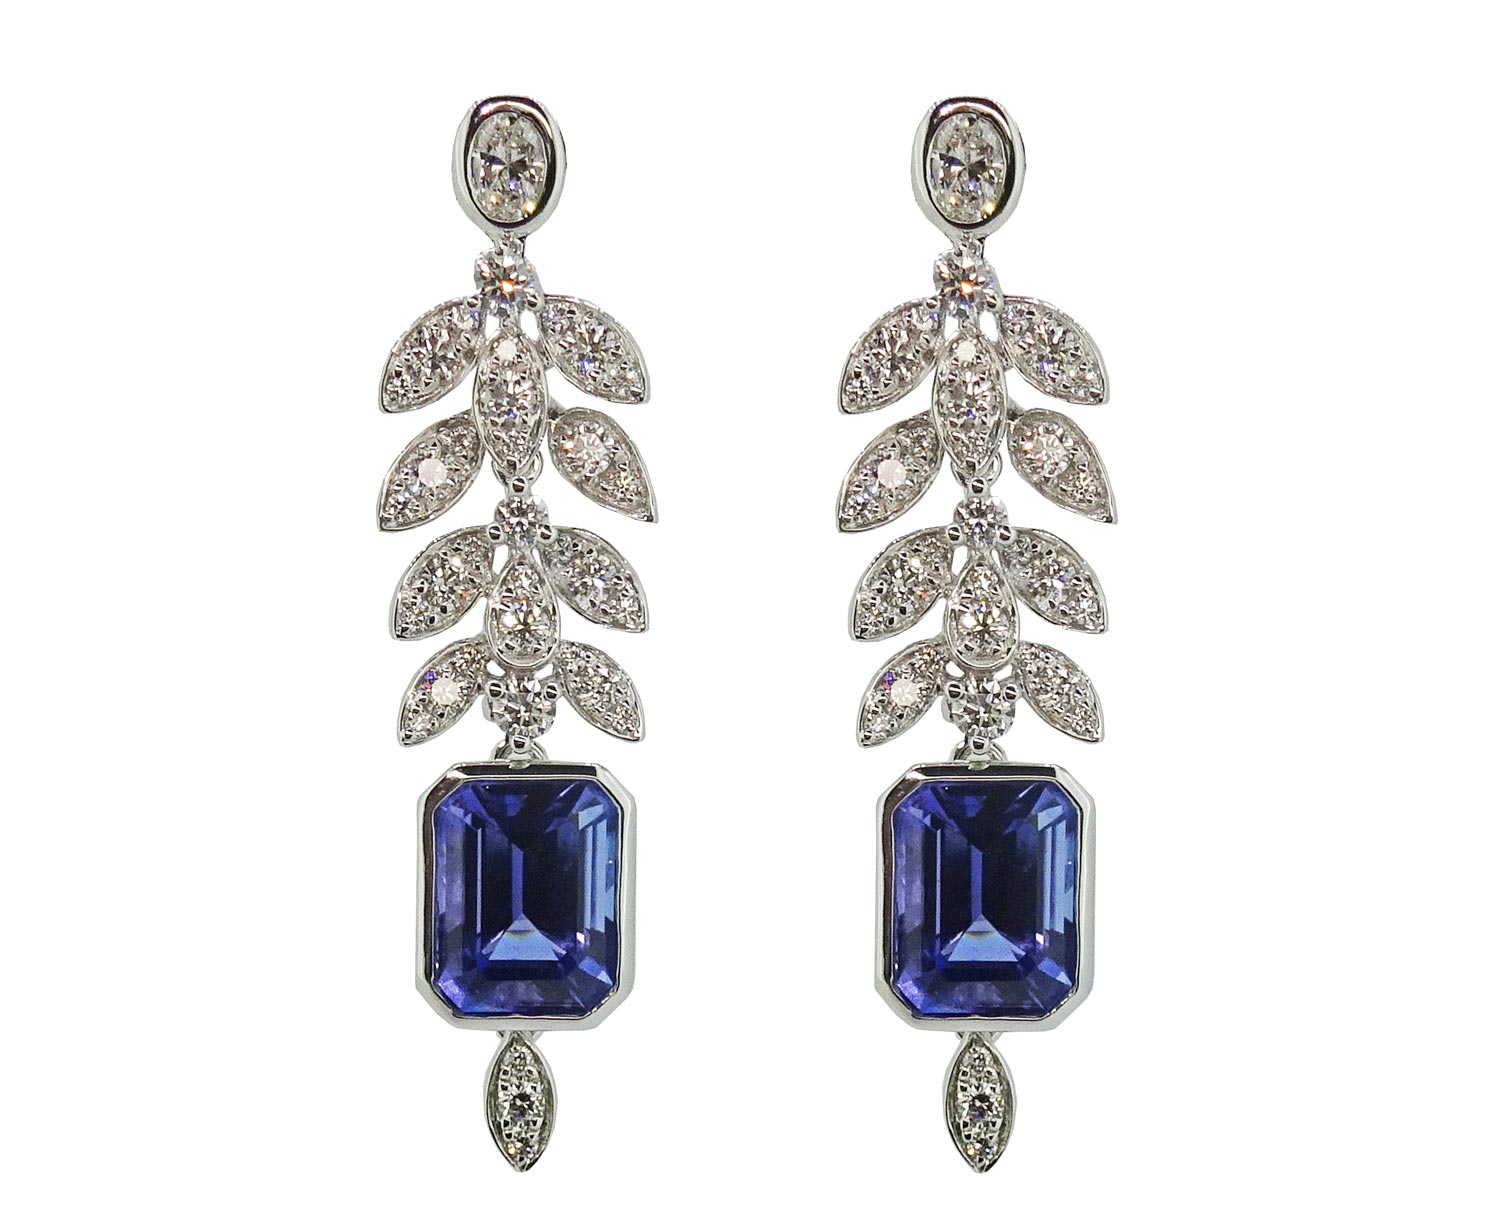 Simone Jewels' Quintessentially British Collection of Jewellery 9